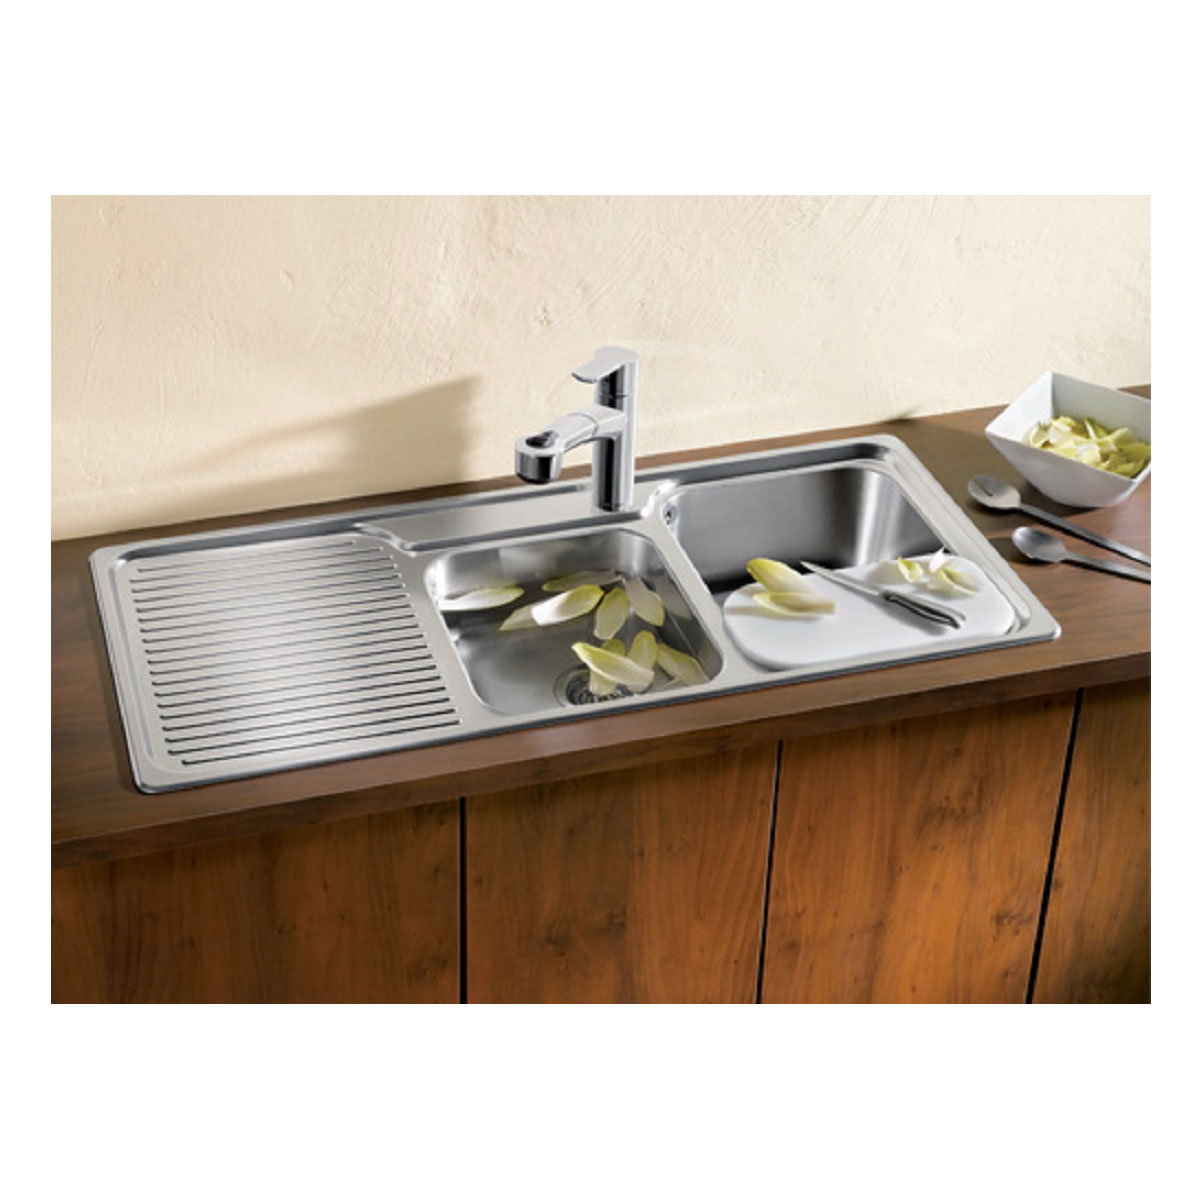 Genial Blanco MCLZL B5899 1 And 3/4 Bowl Right Hand Drainer Sink 37432